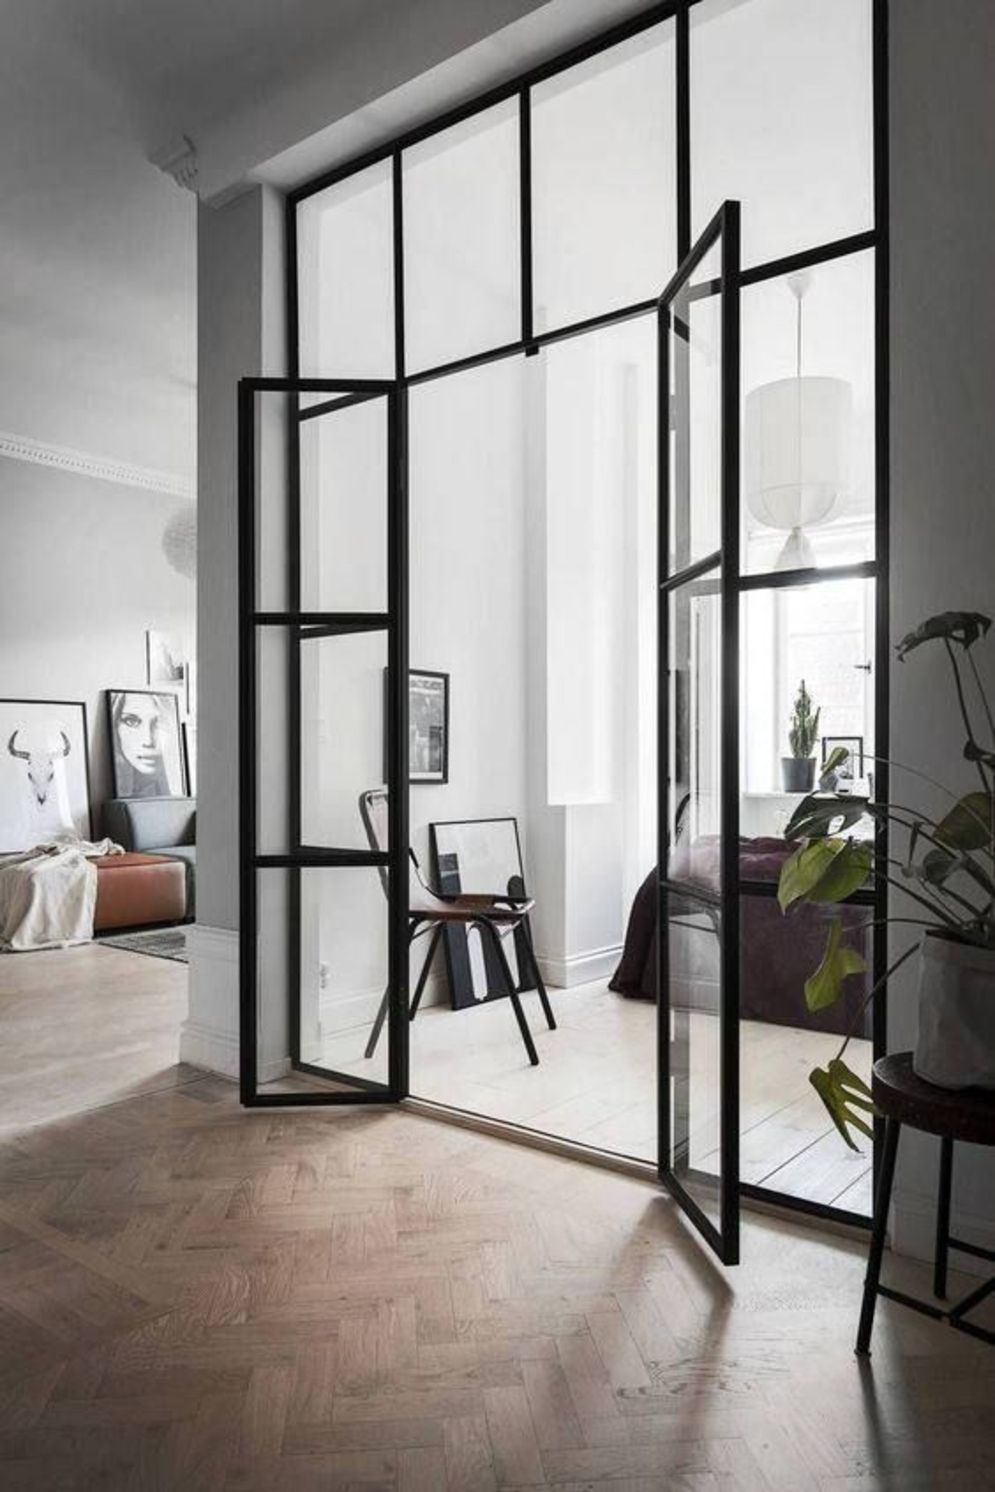 Bright home concepts with modern style of glass partition giving vast interior sense of space Image 10